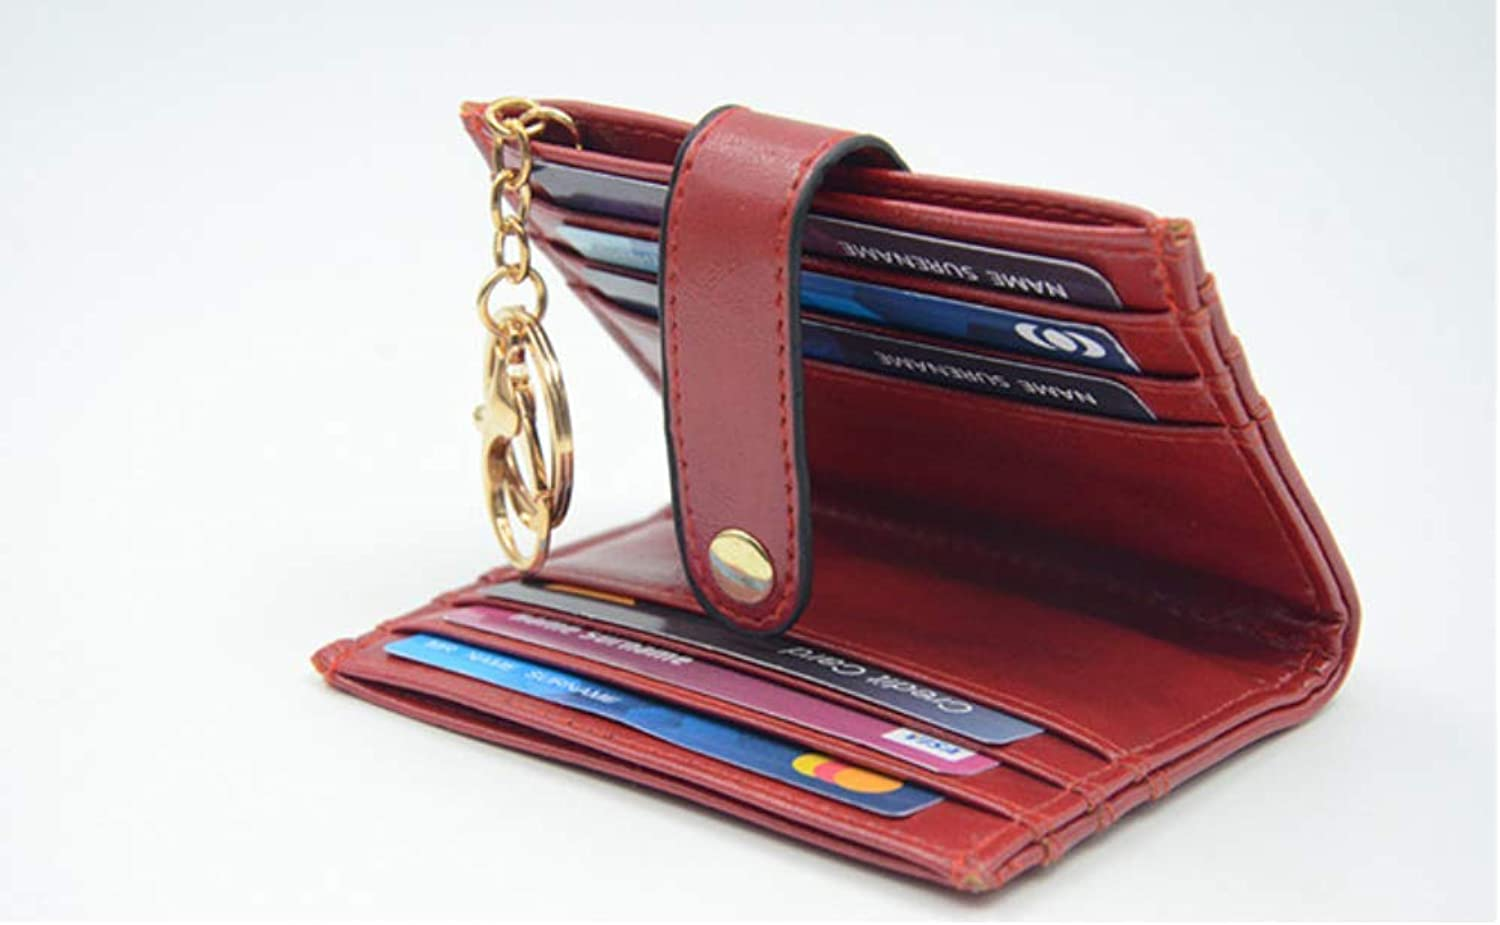 INNC RFID Card Wallet With Key Ring Women's Card Holder Small Bifold Leather Ladies Mini Purse 12 Slots